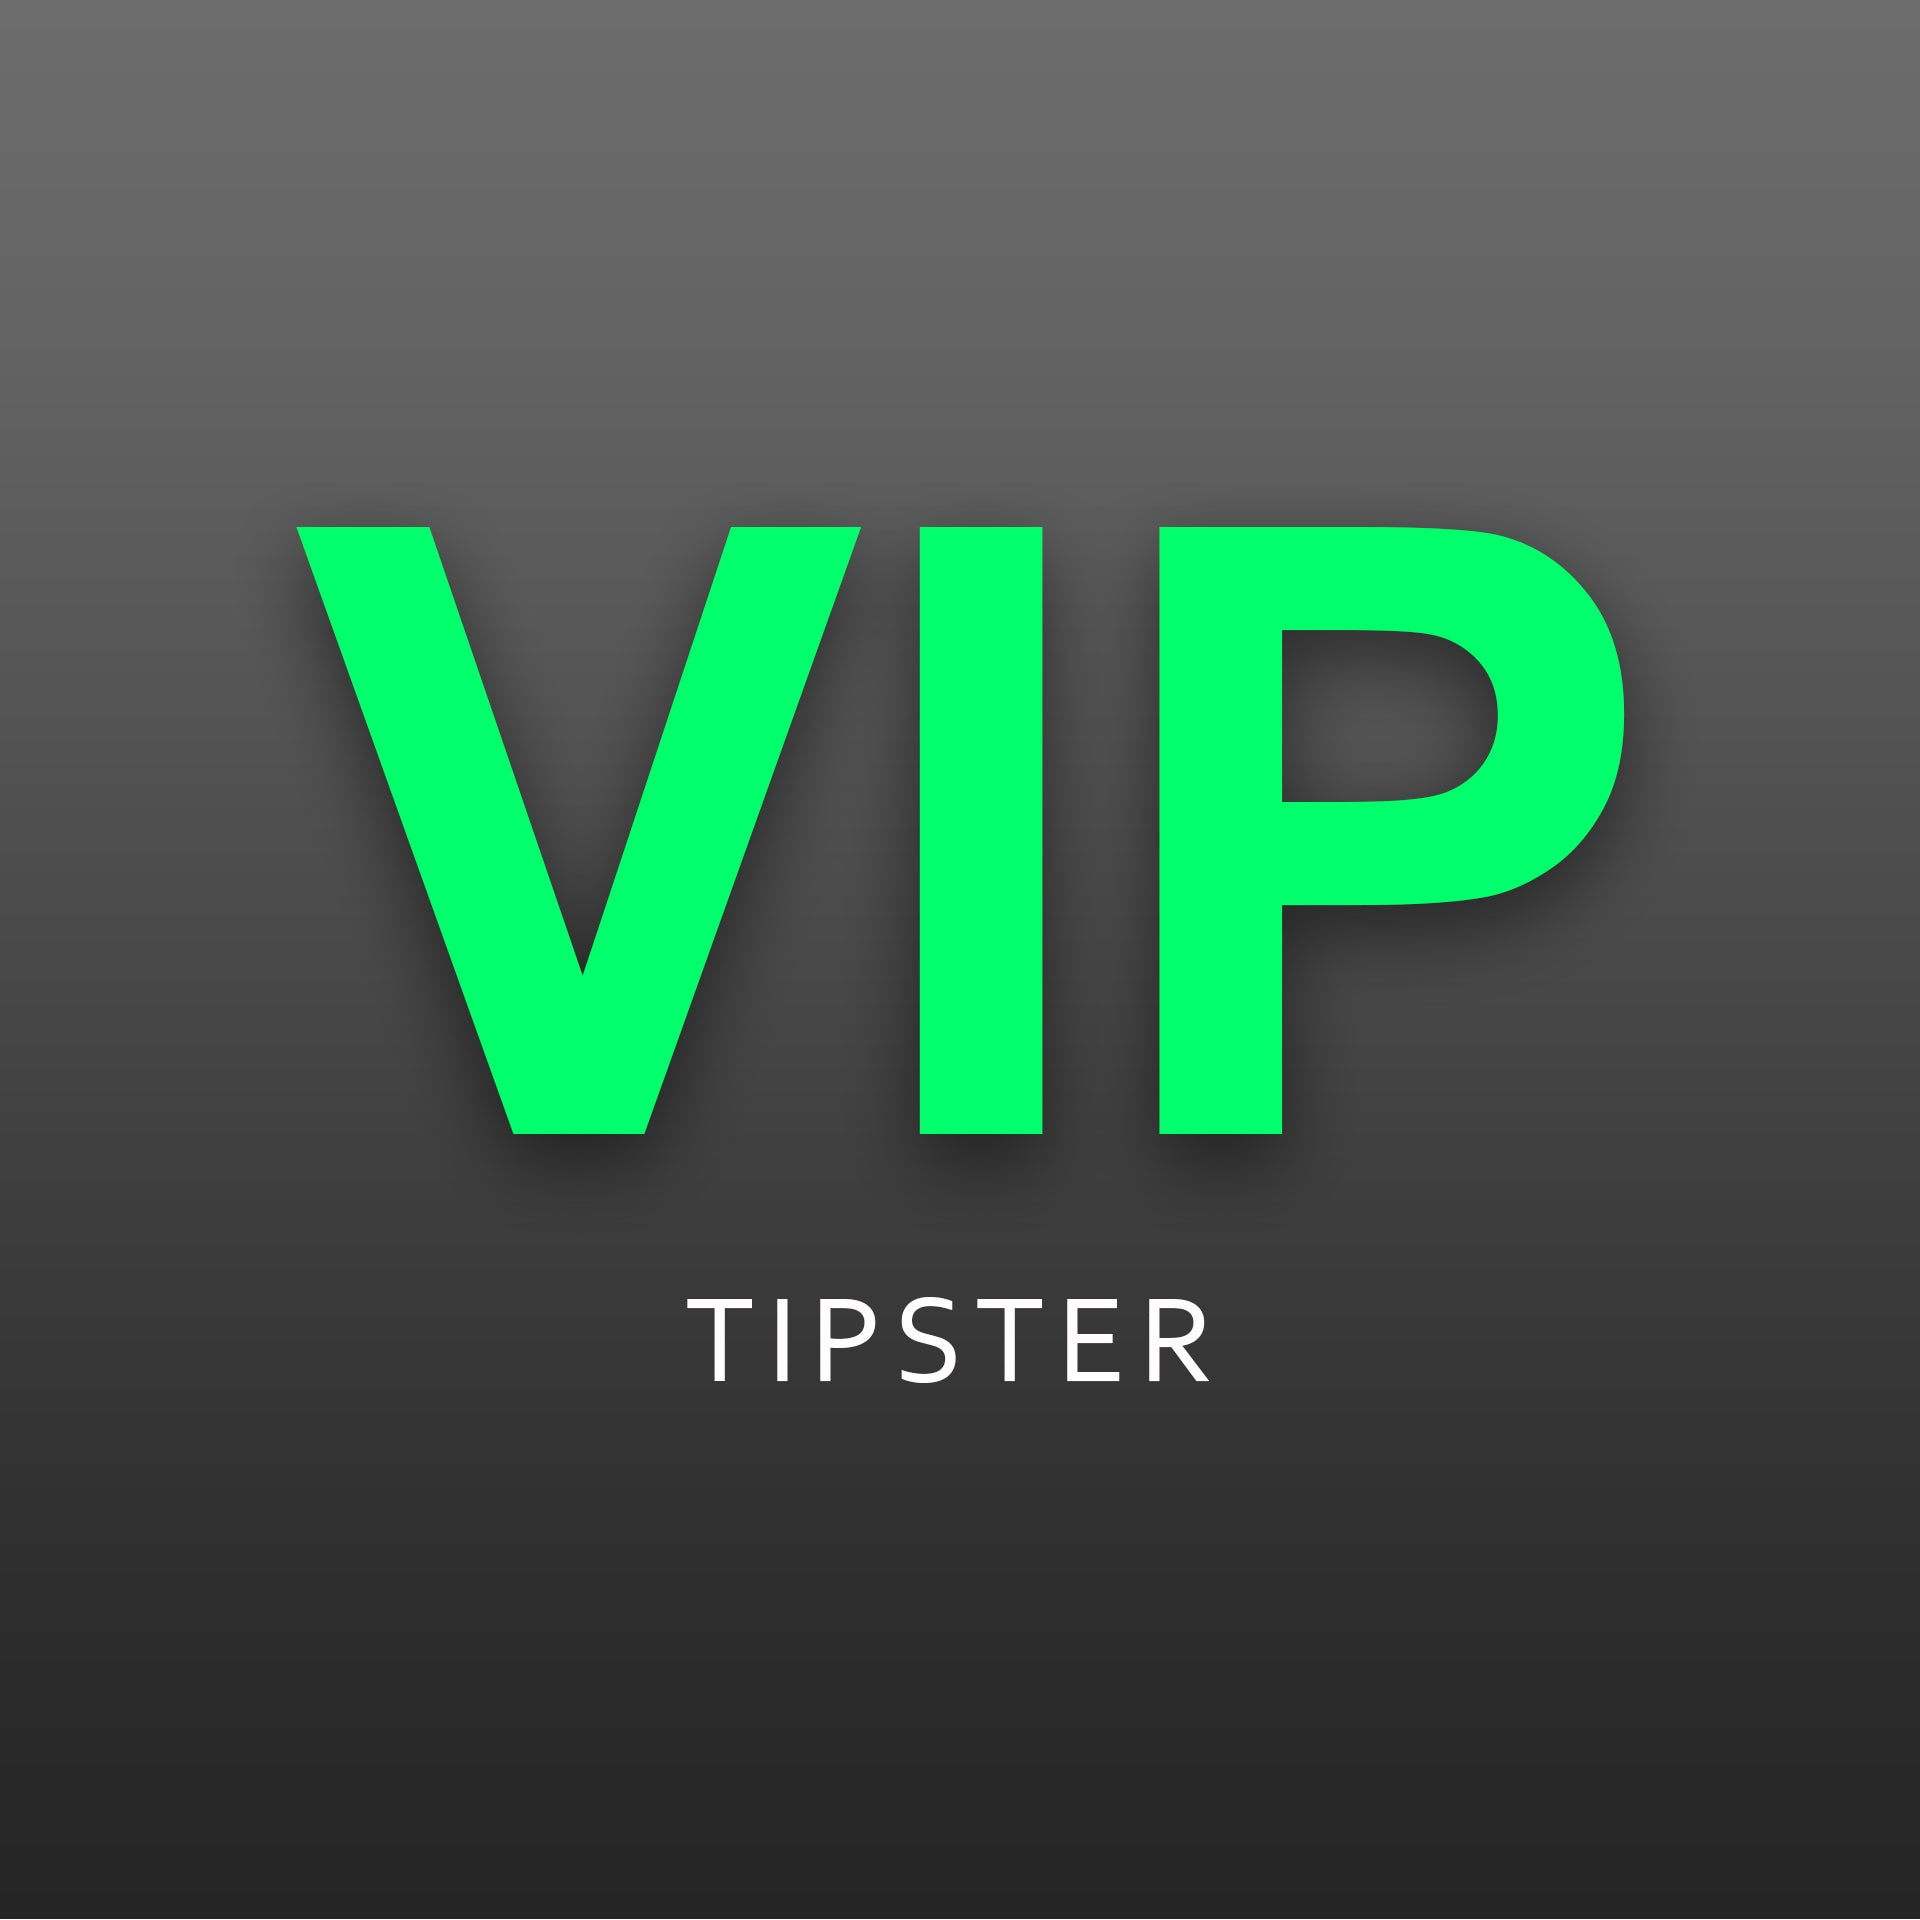 Top sports tipster I VIP Tipster